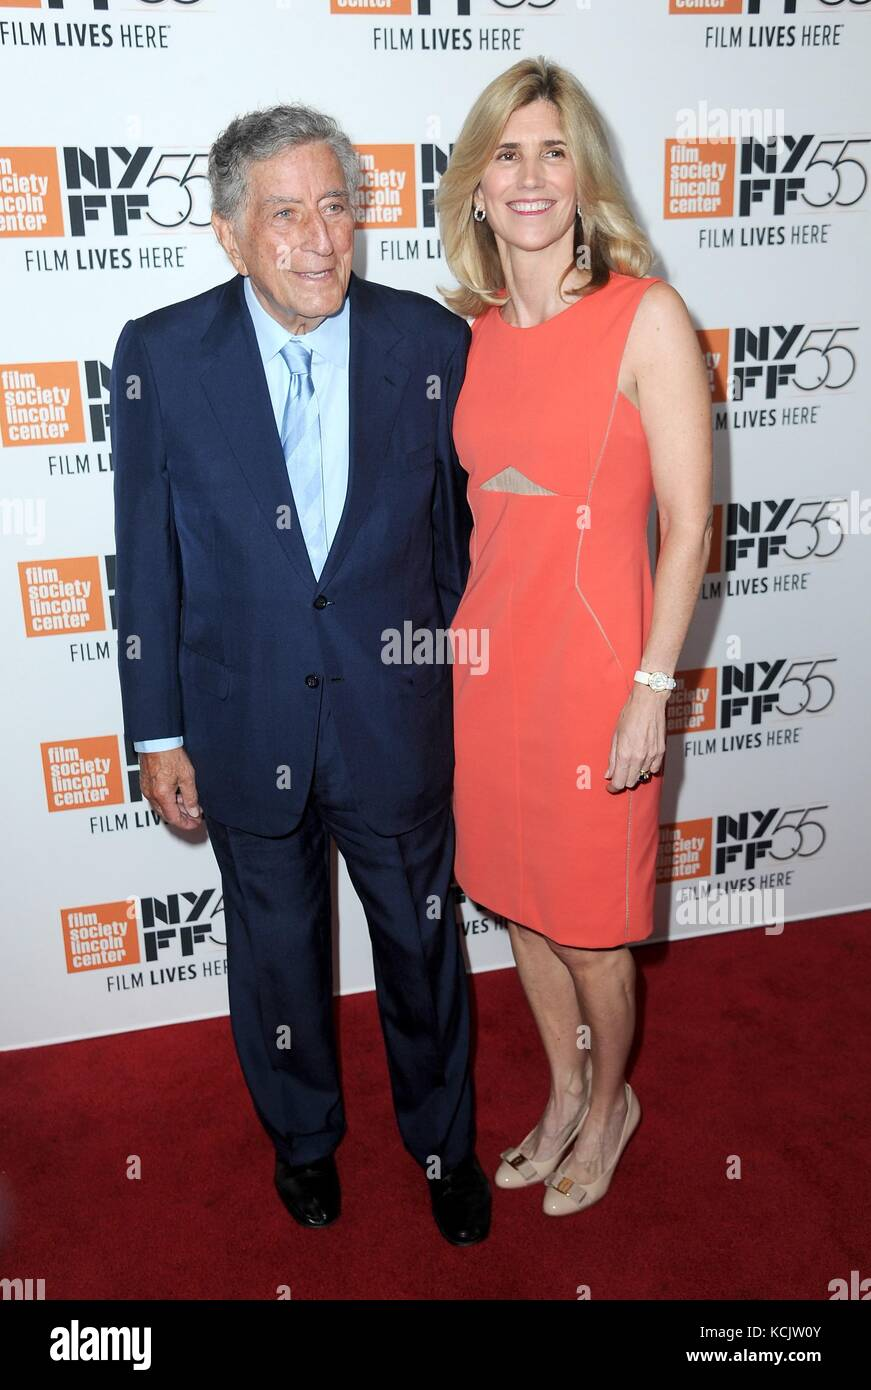 New York, NY, USA. 5th Oct, 2017. Tony Bennett, Susan Crow at arrivals for SPIELBERG Premiere at the 55th Annual Stock Photo